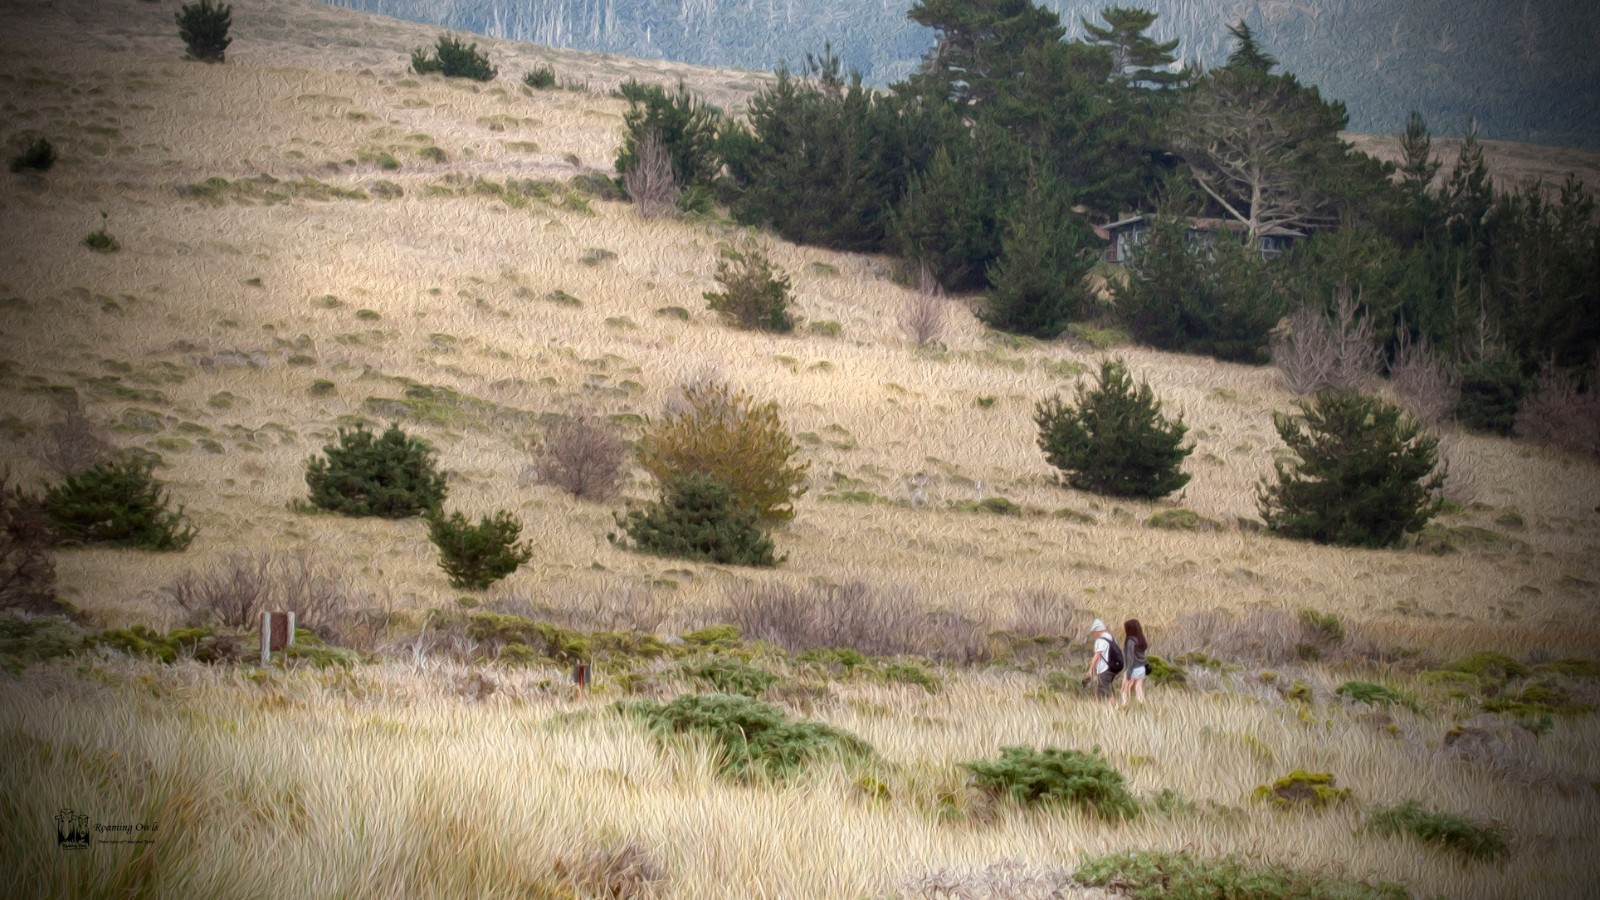 Couple walking in grasslands of Point reyes